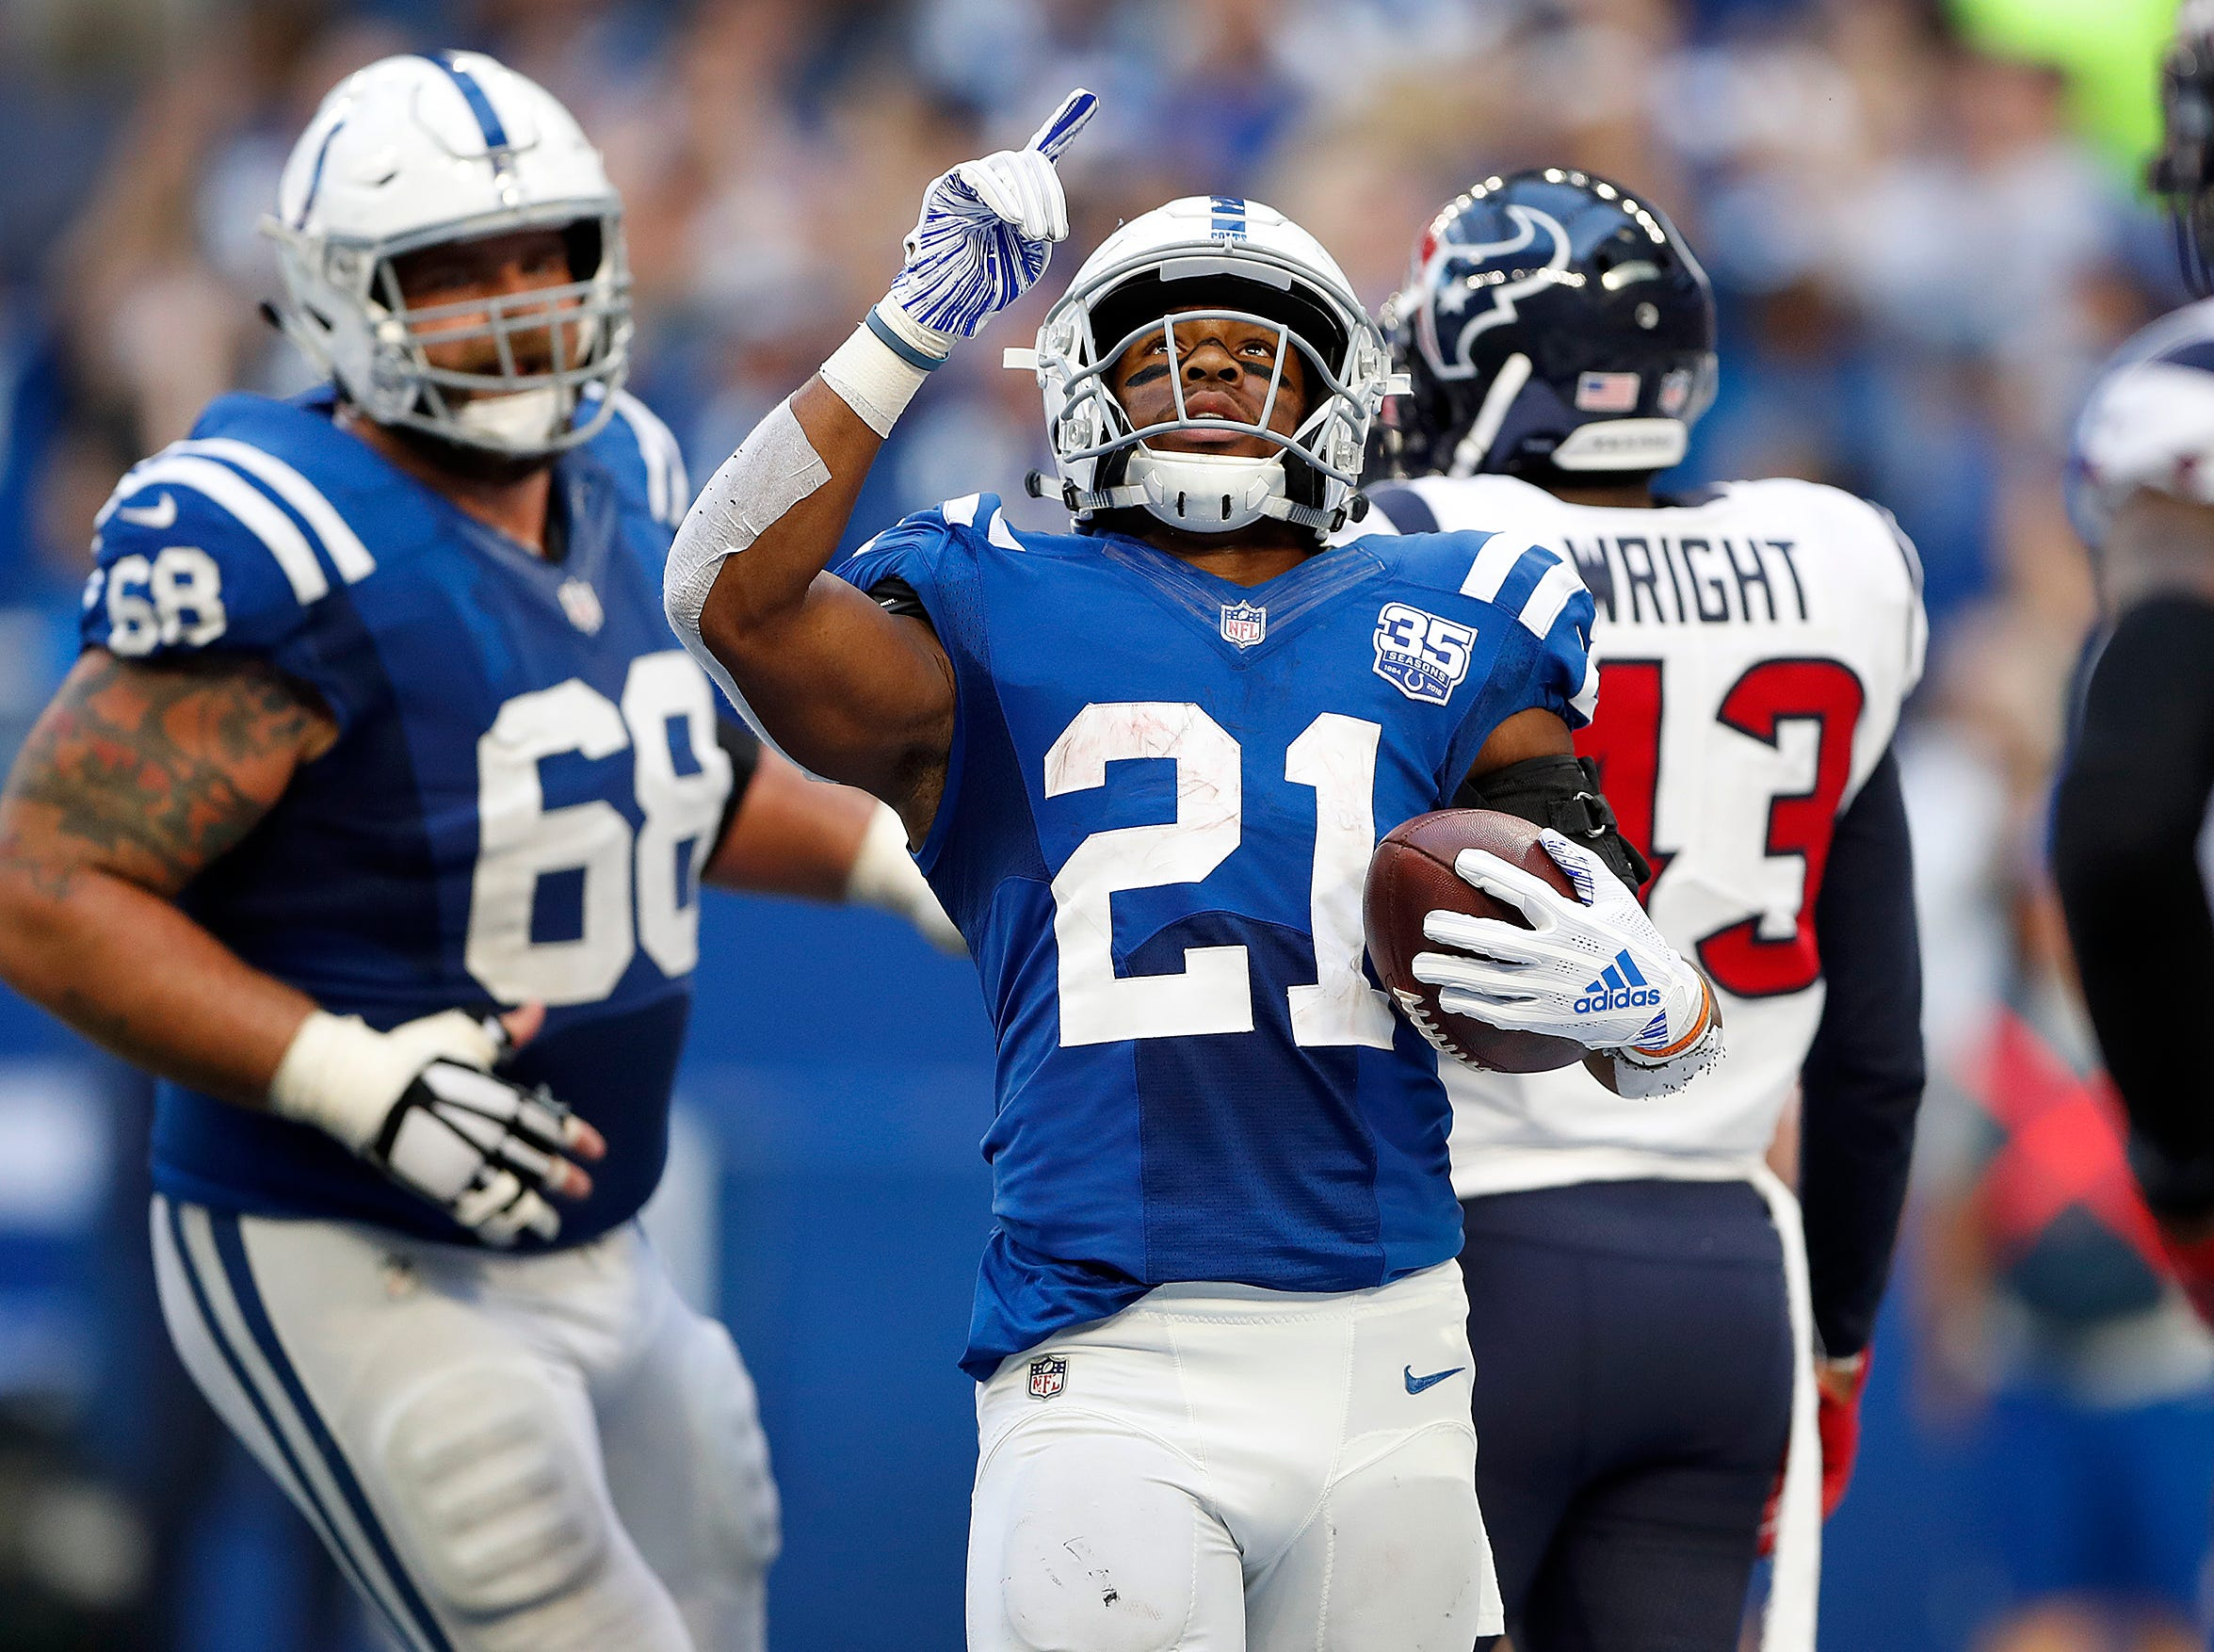 Indianapolis Colts running back Nyheim Hines (21) celebrates his touchdown in the second half of their game on Sunday, Sept. 30, 2018. The Indianapolis Colts lost 37-34 in overtime to the Houston Texans.